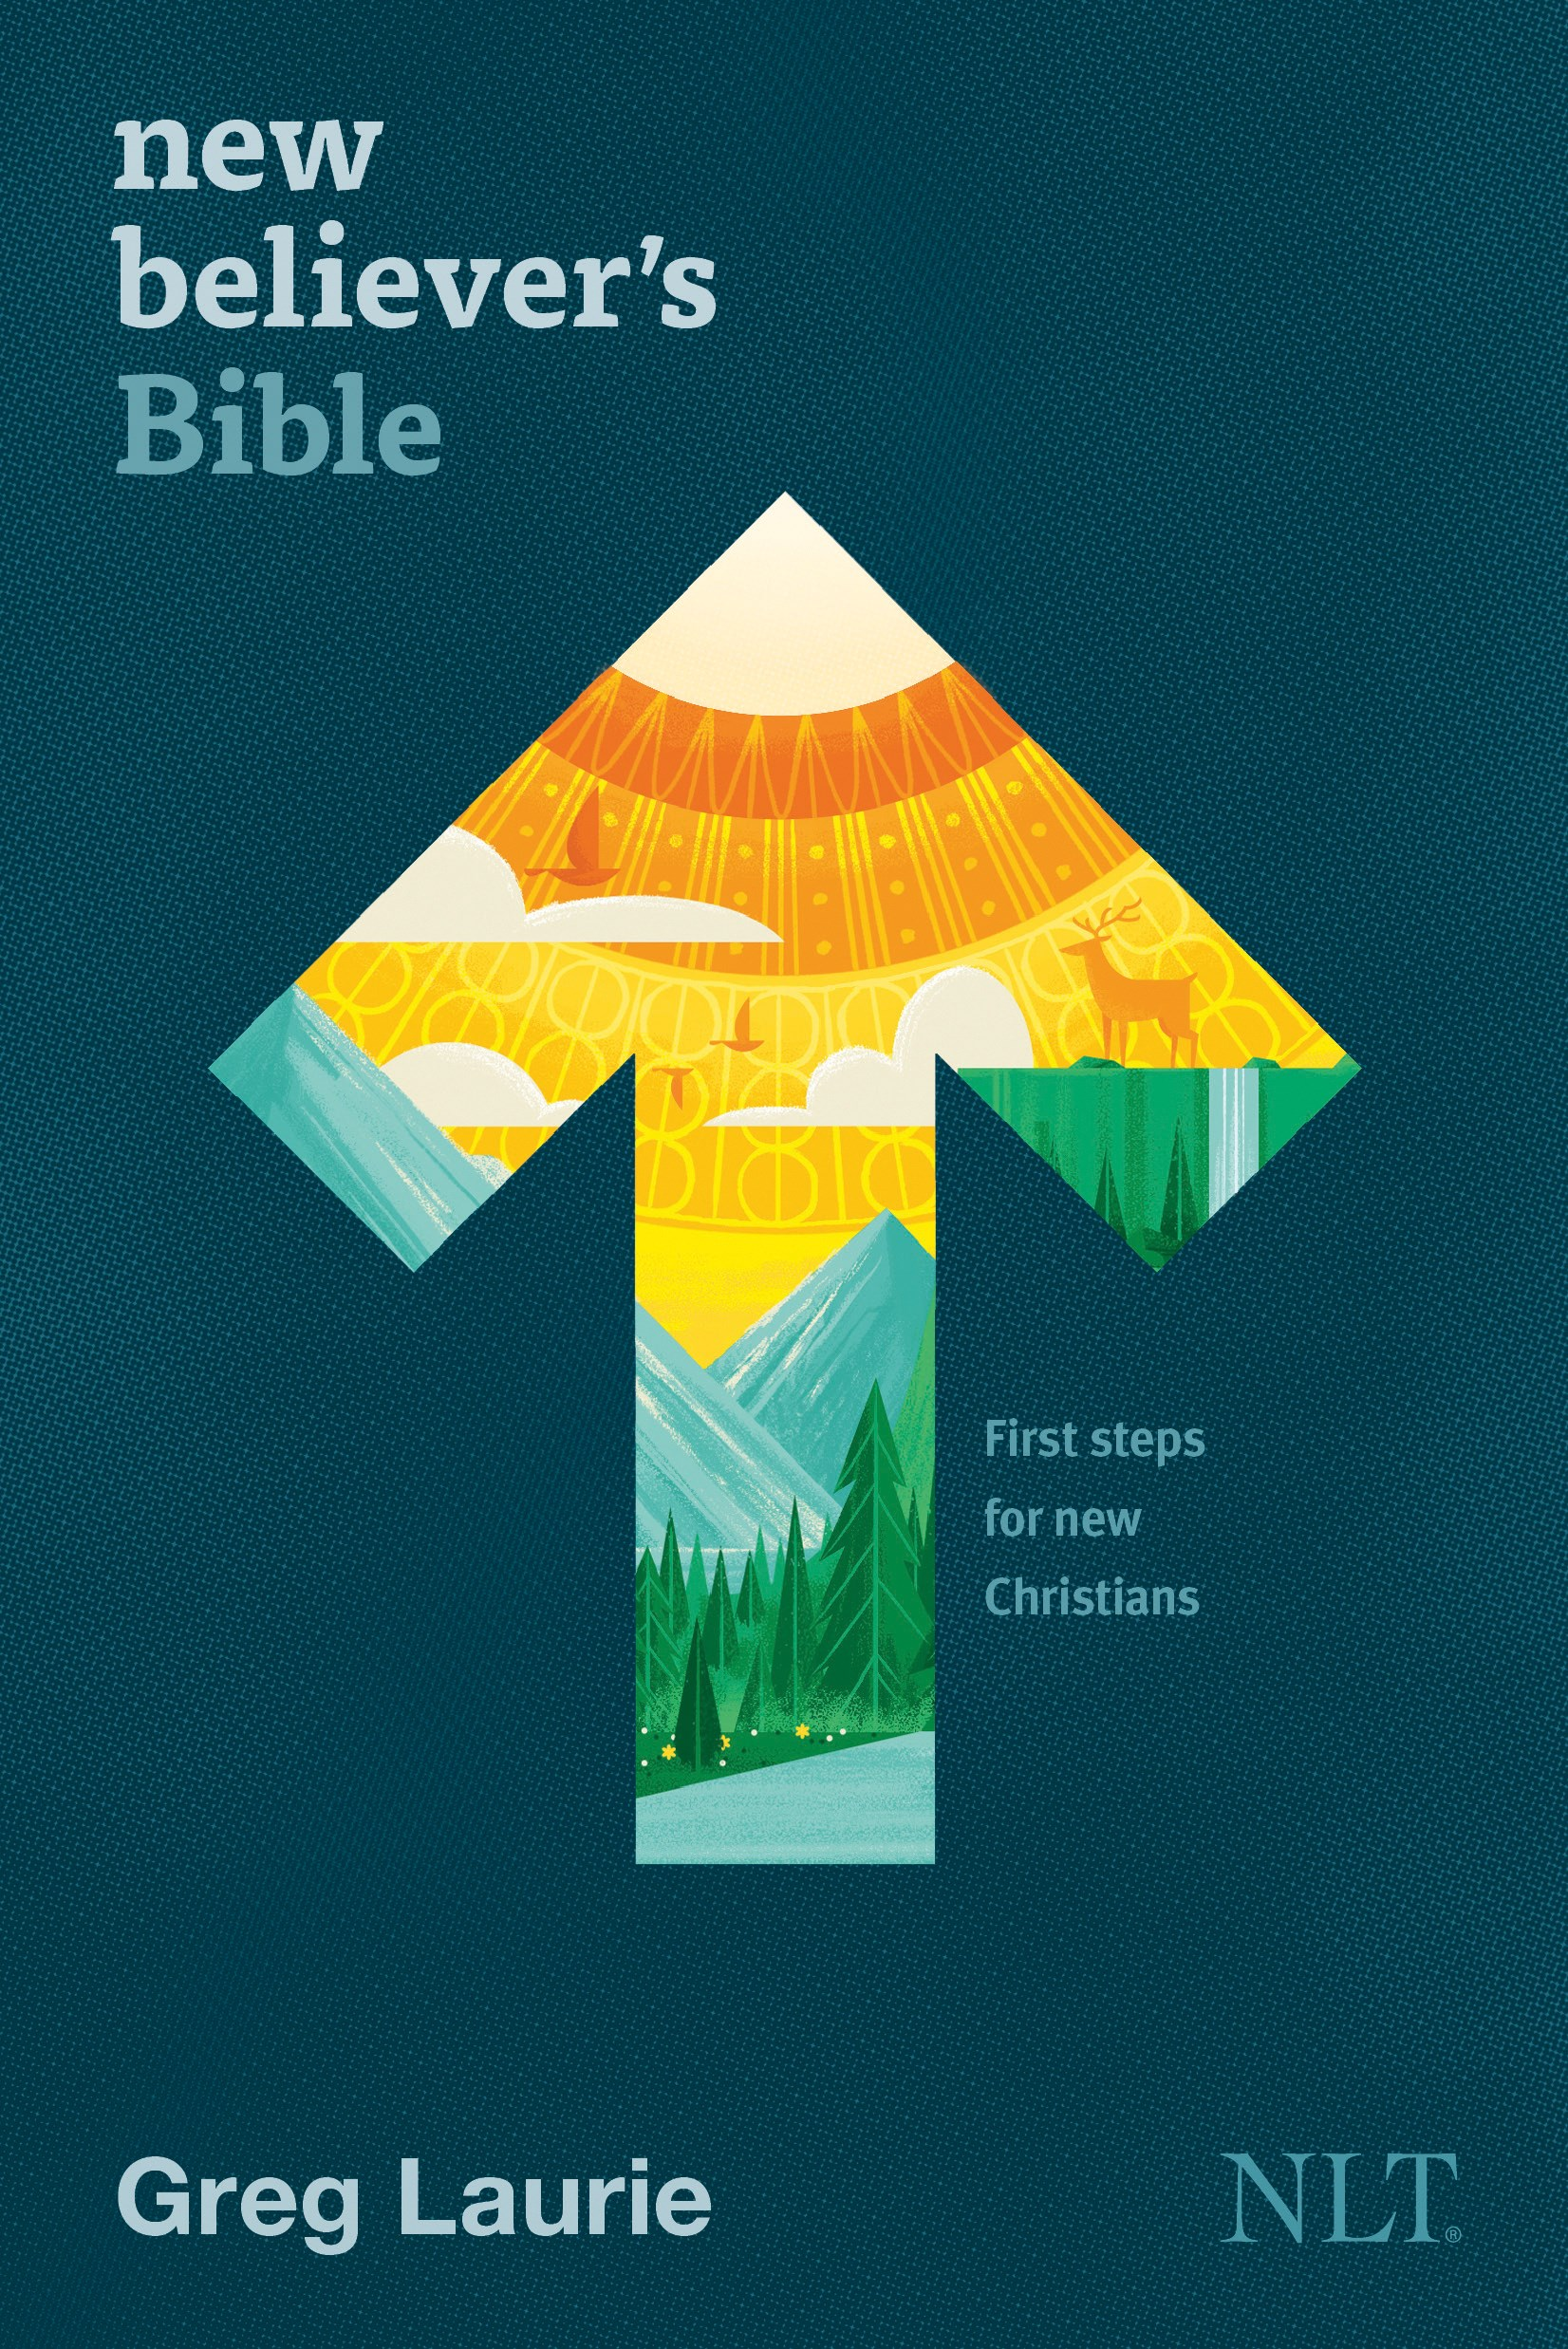 NLT New Believer's Bible-Softcover (Expanded)